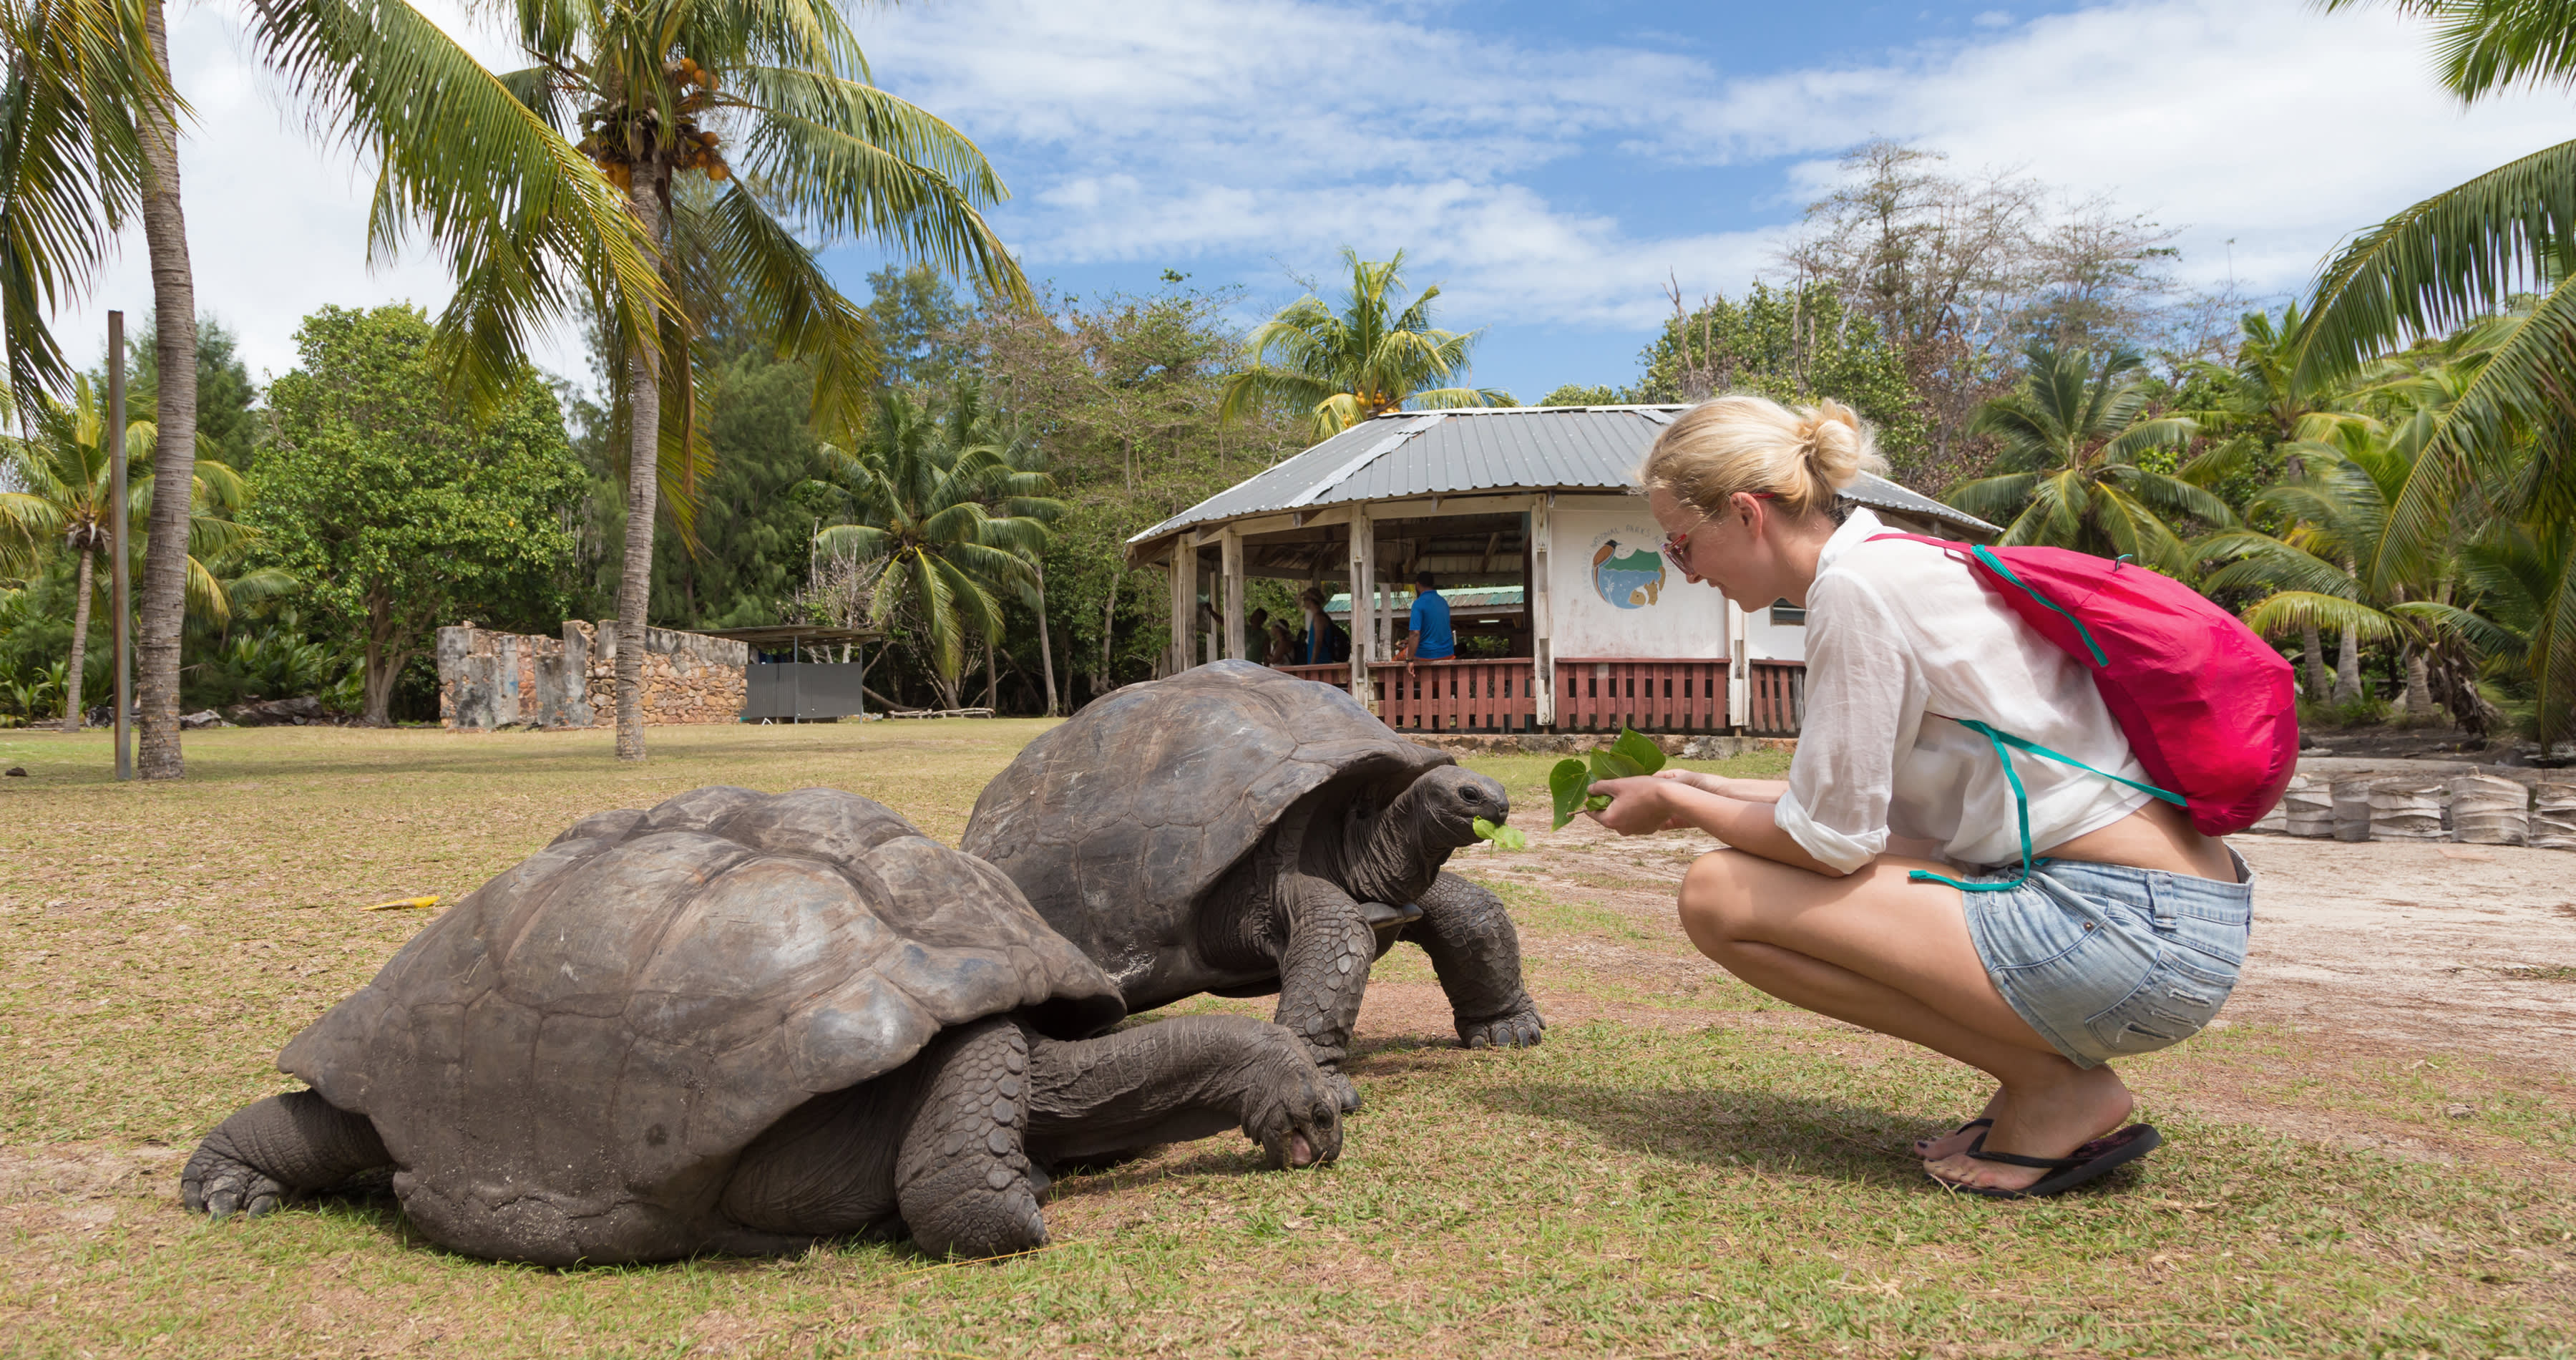 Seychelles safety - Female tourist woman feeding old Aldabra giant tortoises in National Marine Park on Curieuse island, Praslin, Seychelles, Africa - Seychelles travel guide